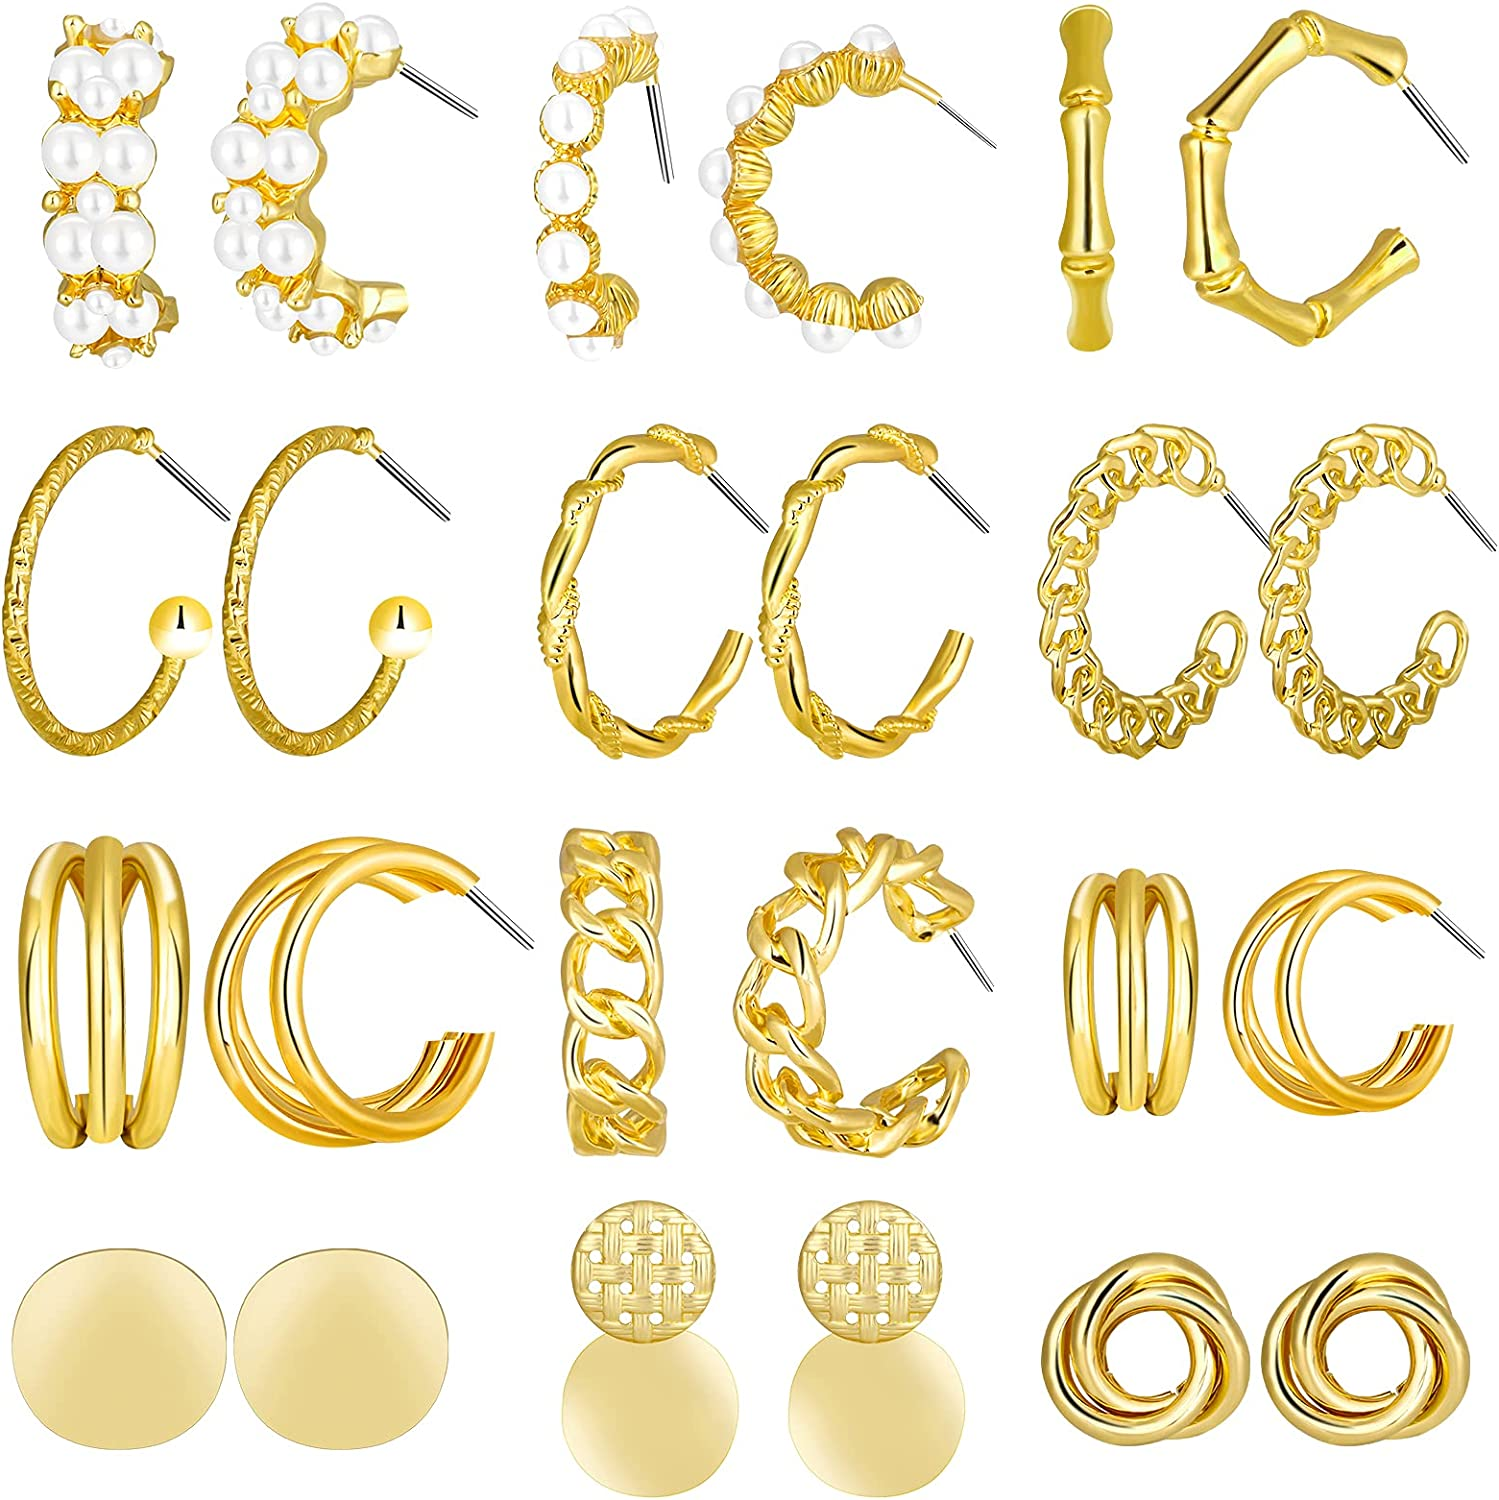 Mukum 12 Pairs Gold Hoop Earrings Set for Women Chunky Hoops Earrings Thick Open Twisted Link Hoop Gold Jewelry Sets for Women Girls Birthday Gifts